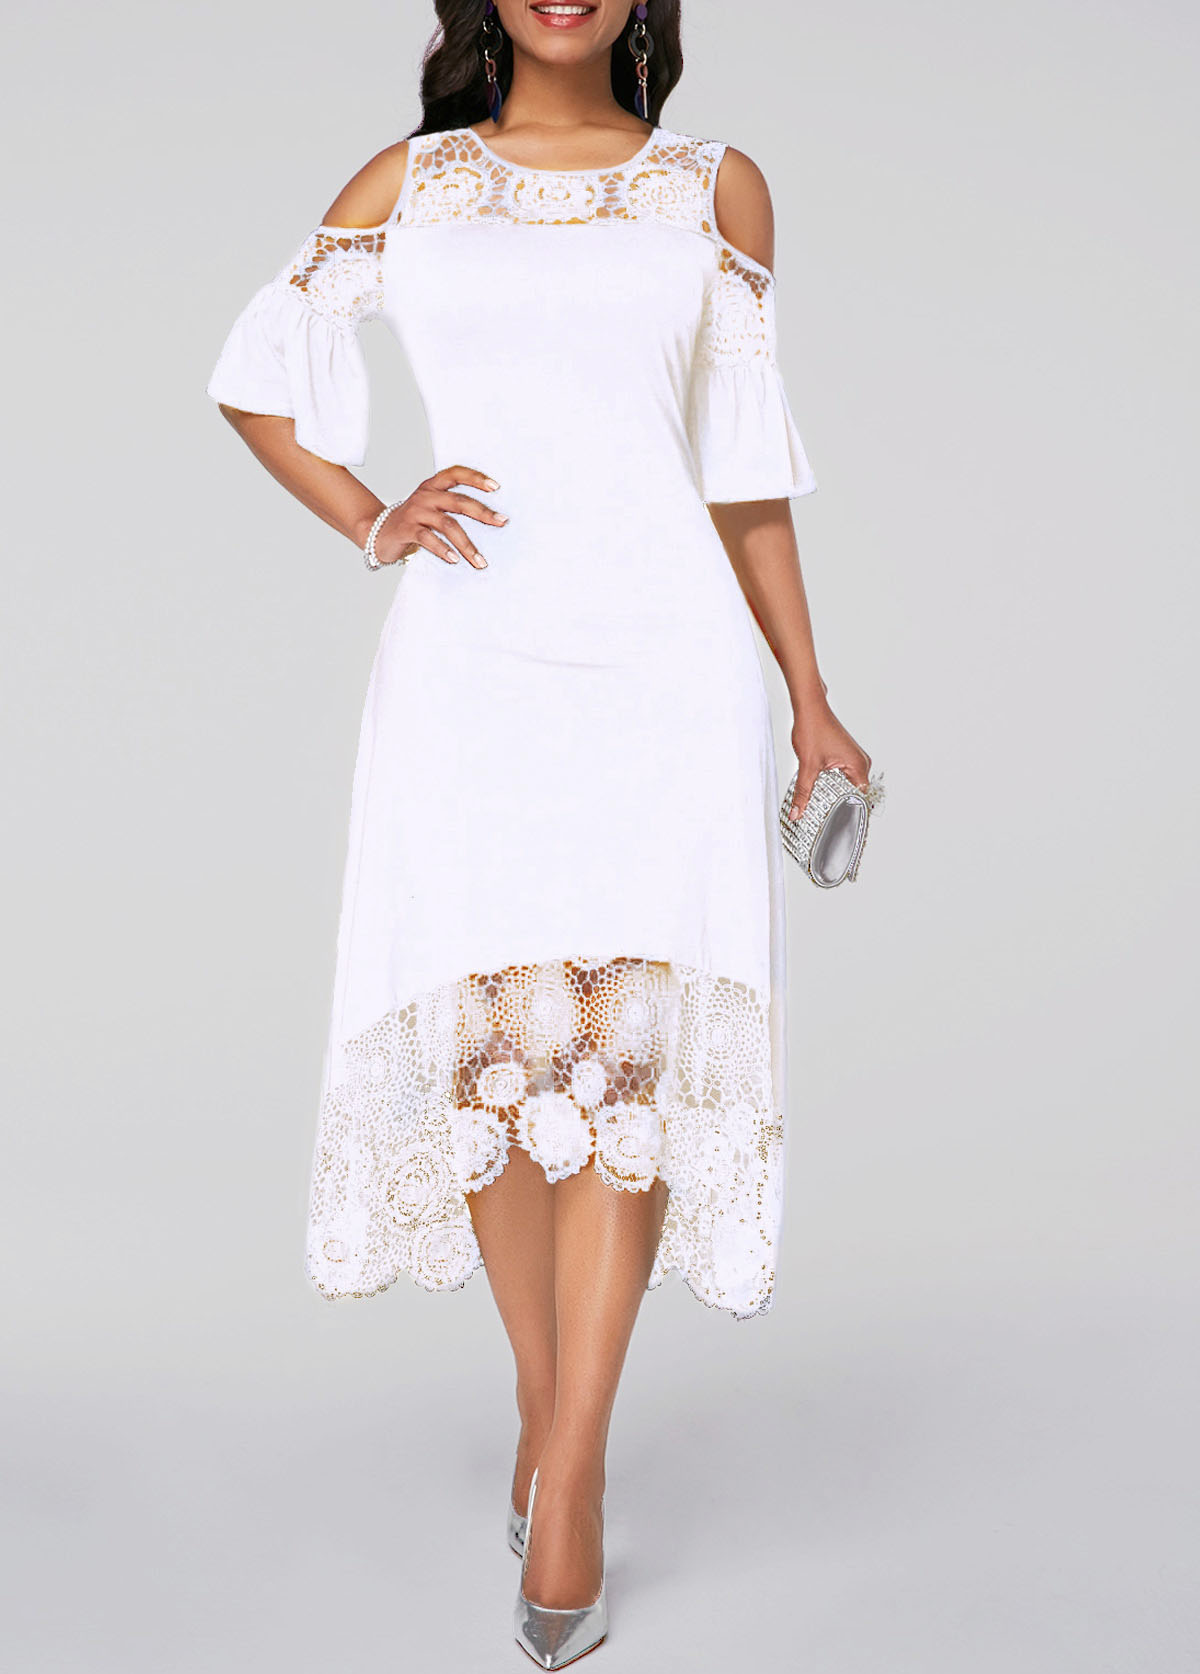 Flare Cuff Lace Panel Cold Shoulder White Dress